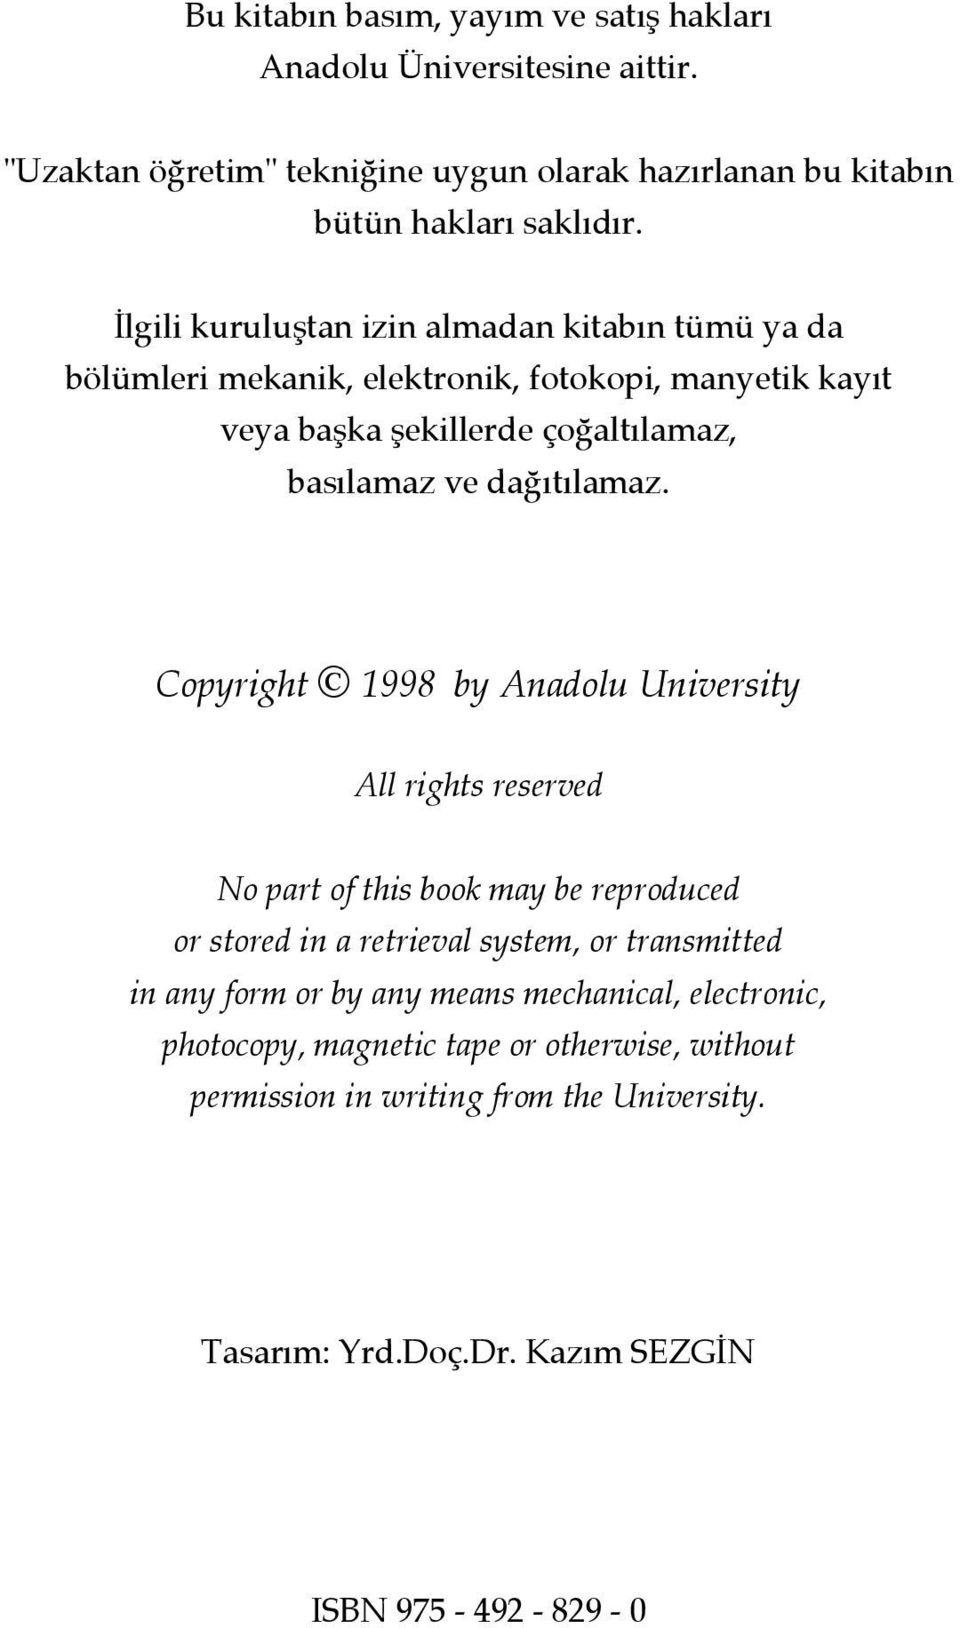 Copyright 1998 by Anadolu University All rights reserved No part of this book may be reproduced or stored in a retrieval system, or transmitted in any form or by any